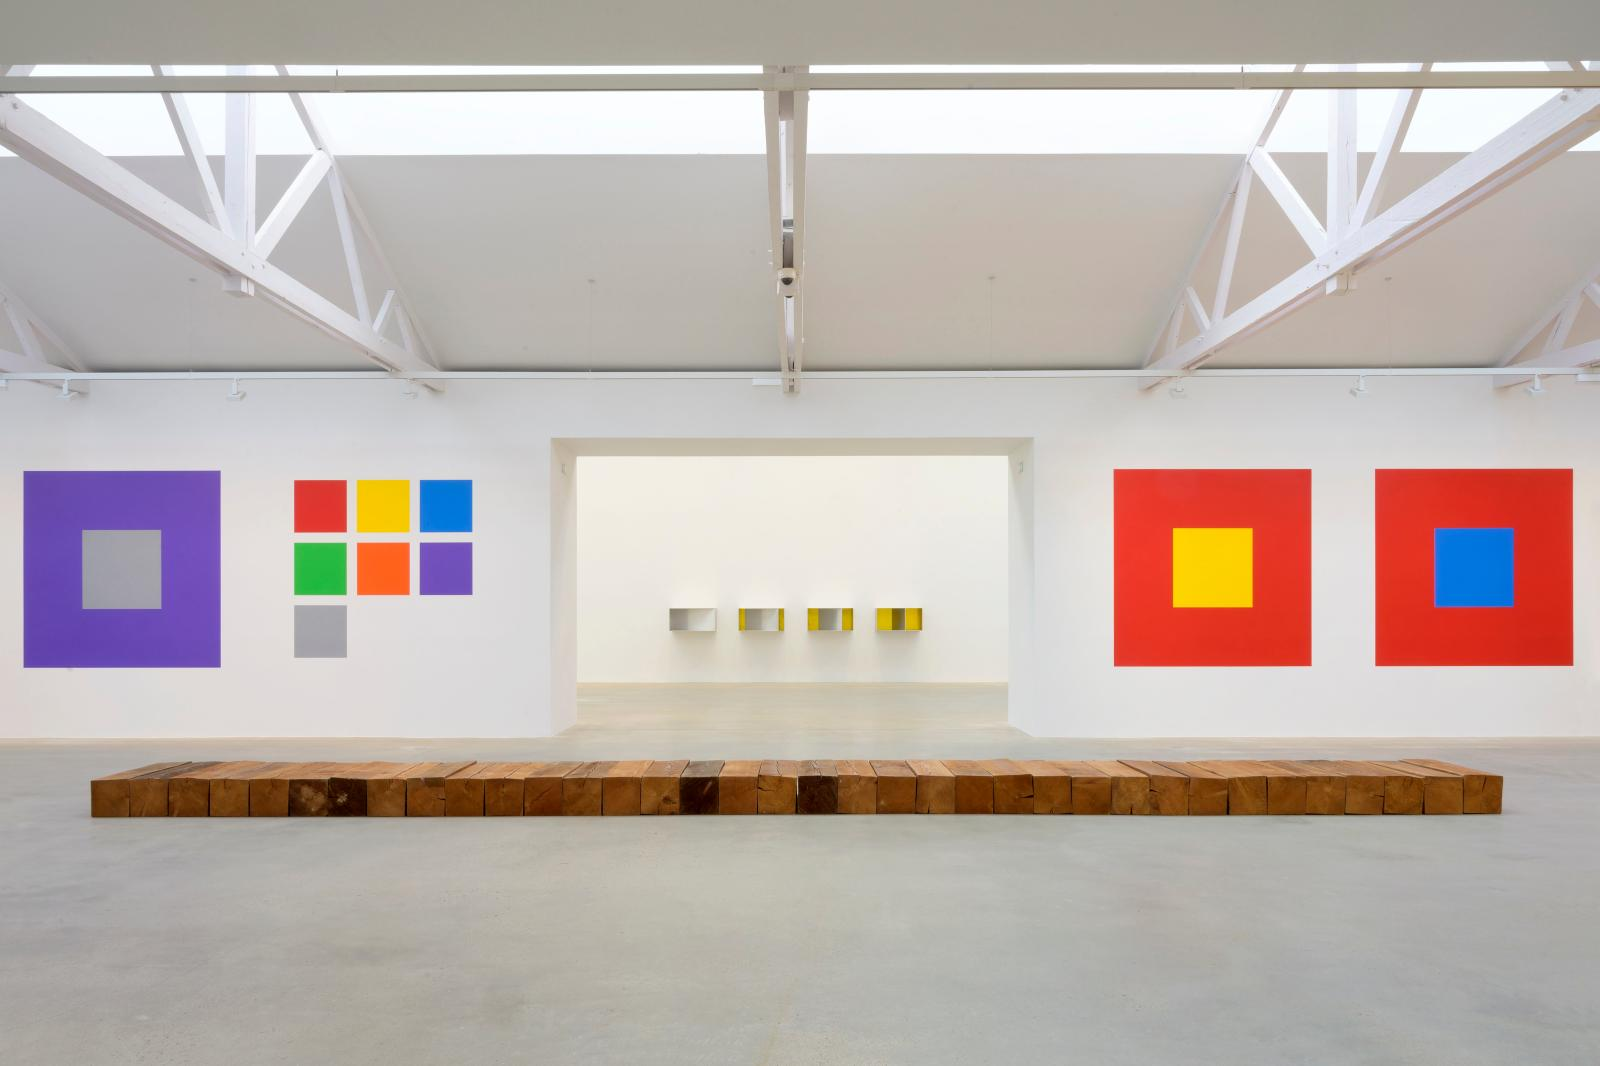 """BAR"" (1981) by Carl Andre, ""Wall Drawing #1176 Seven Basic Colors and All Their Combinations in a Square within a Square"" (2005) by Sol LeWitt and ""U"